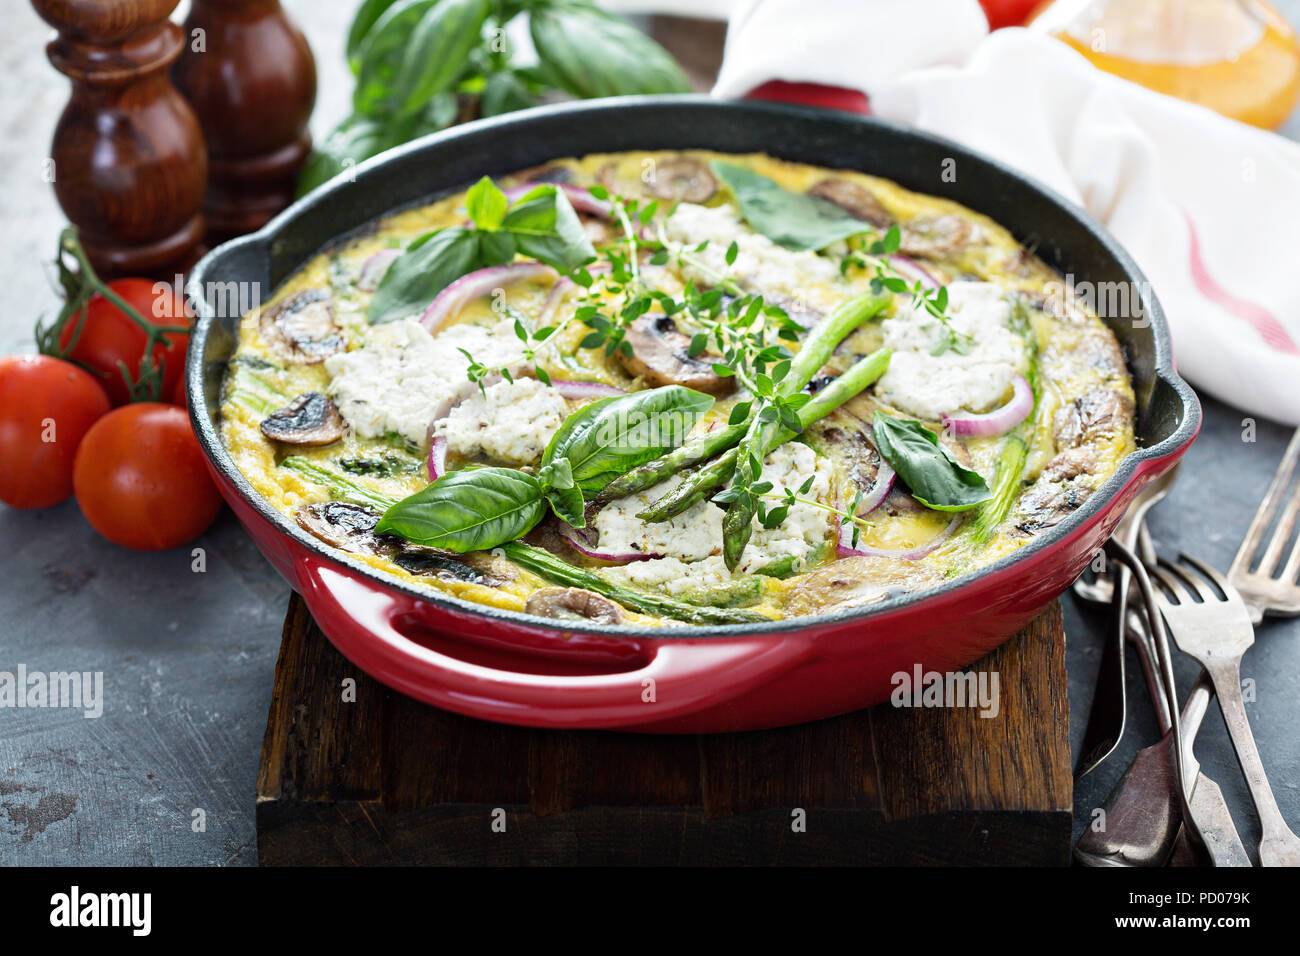 Asparagus, mushrooms and goat cheese frittata - Stock Image